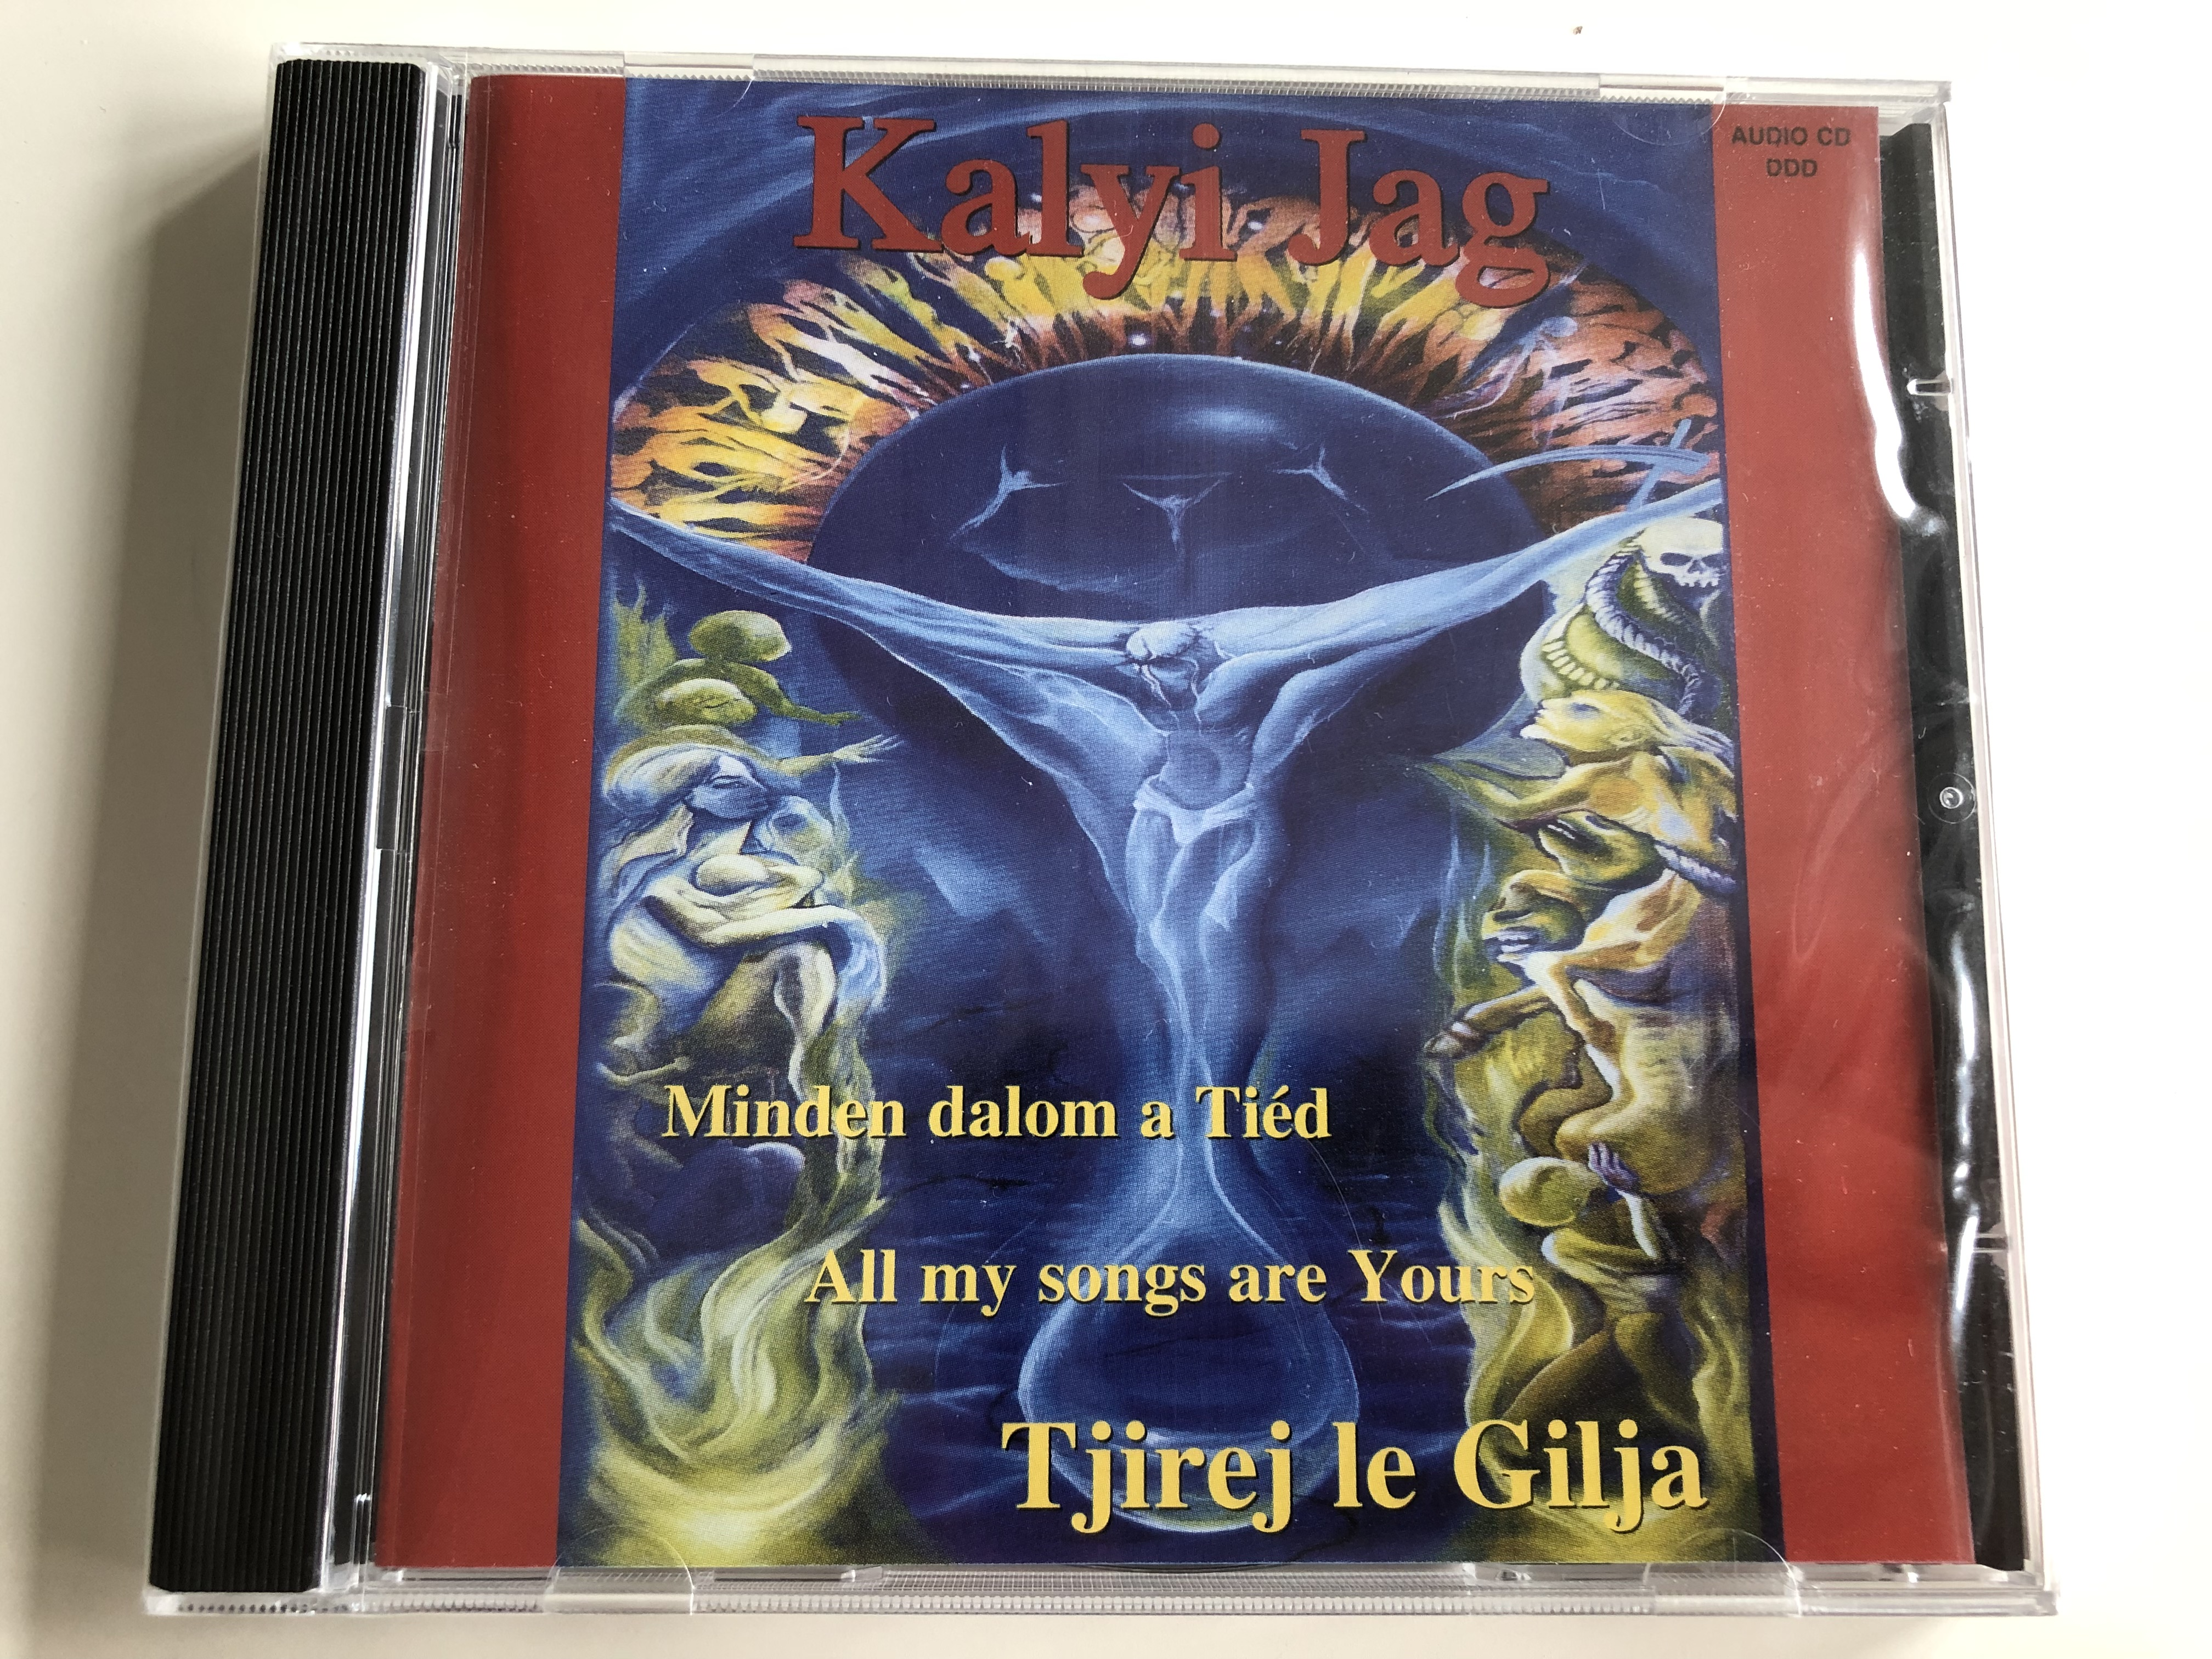 kalyi-jag-minden-dalom-a-ti-d-all-my-songs-are-yours-tjirej-le-gilja-audio-cd-068-2-music-text-by-sir-guszt-v-varga-1-.jpg